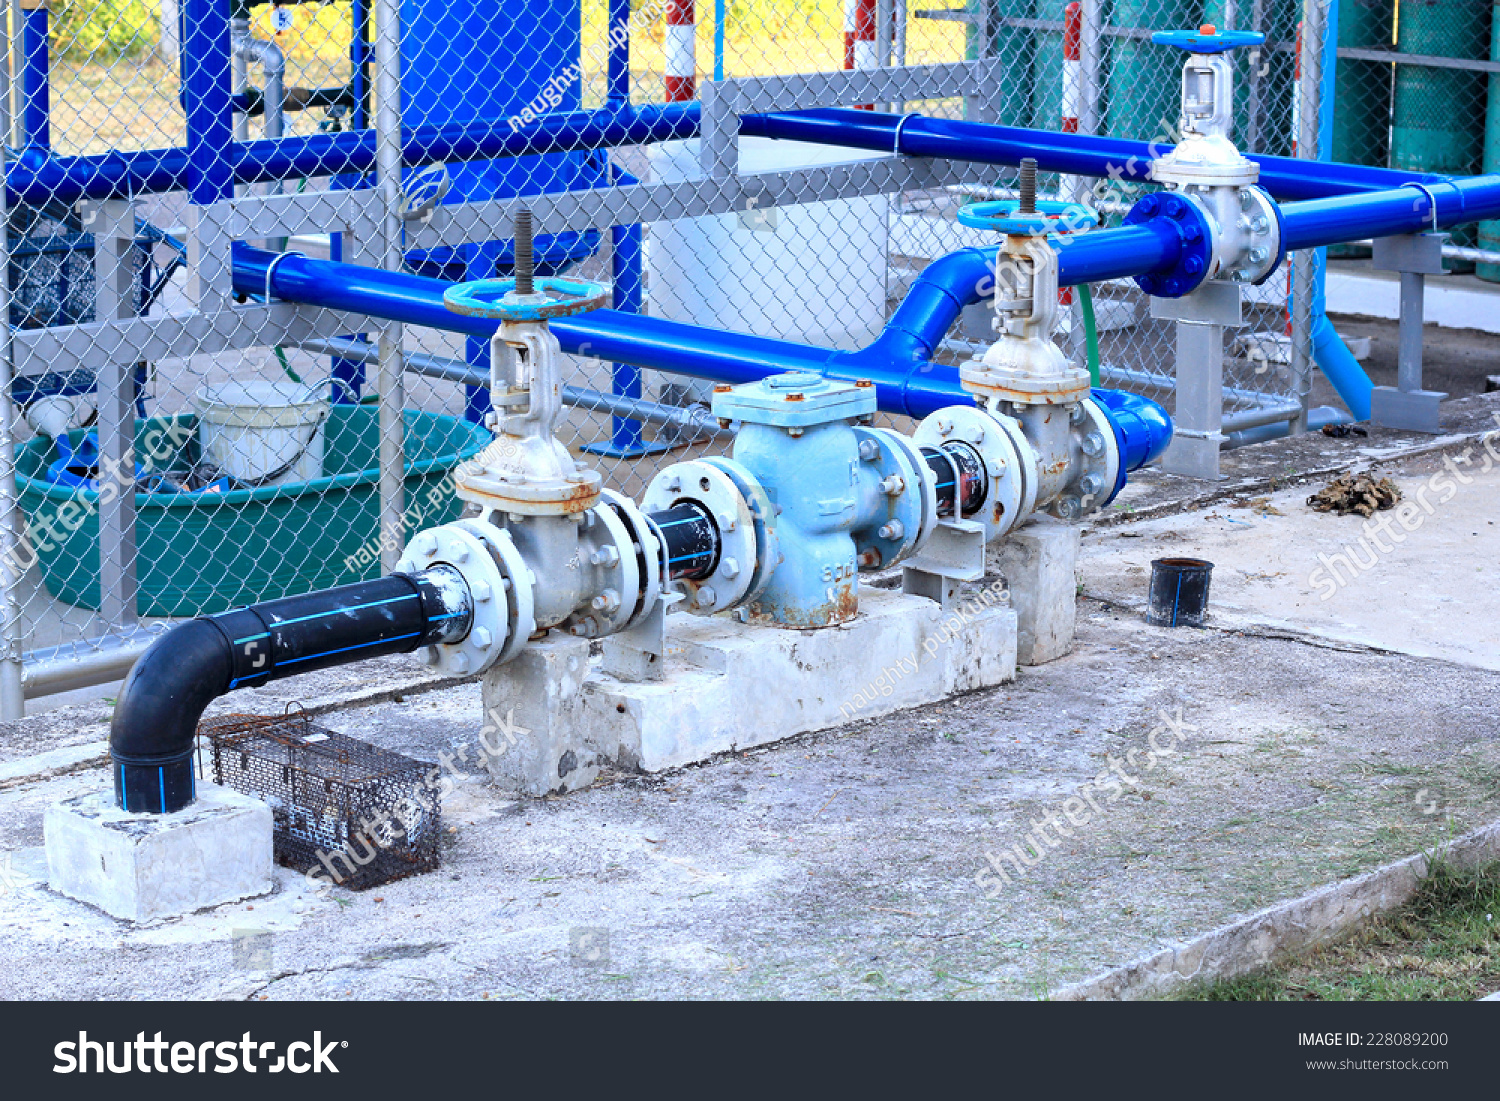 Industrial Air Pipes : Industrial air condition pipes plumbing cooler fire stock